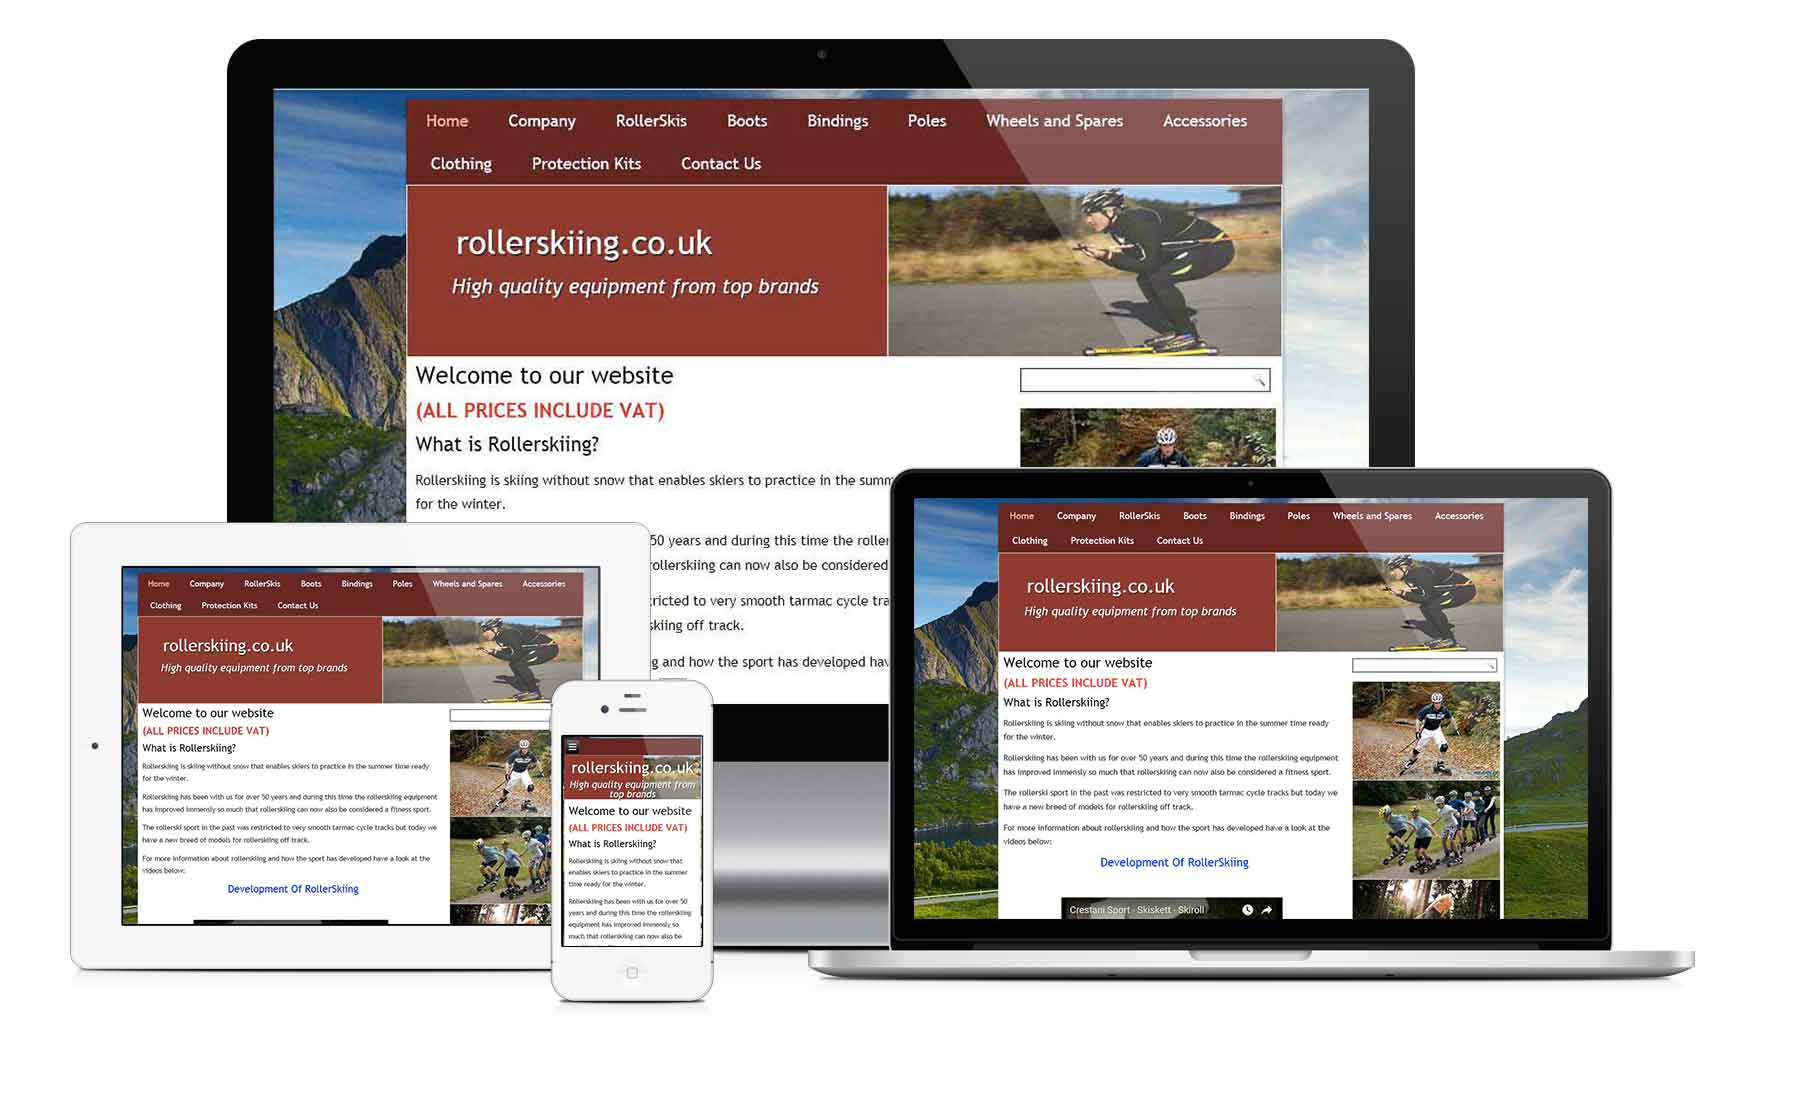 image of the website rollerskiing.co.uk as seen on different devices